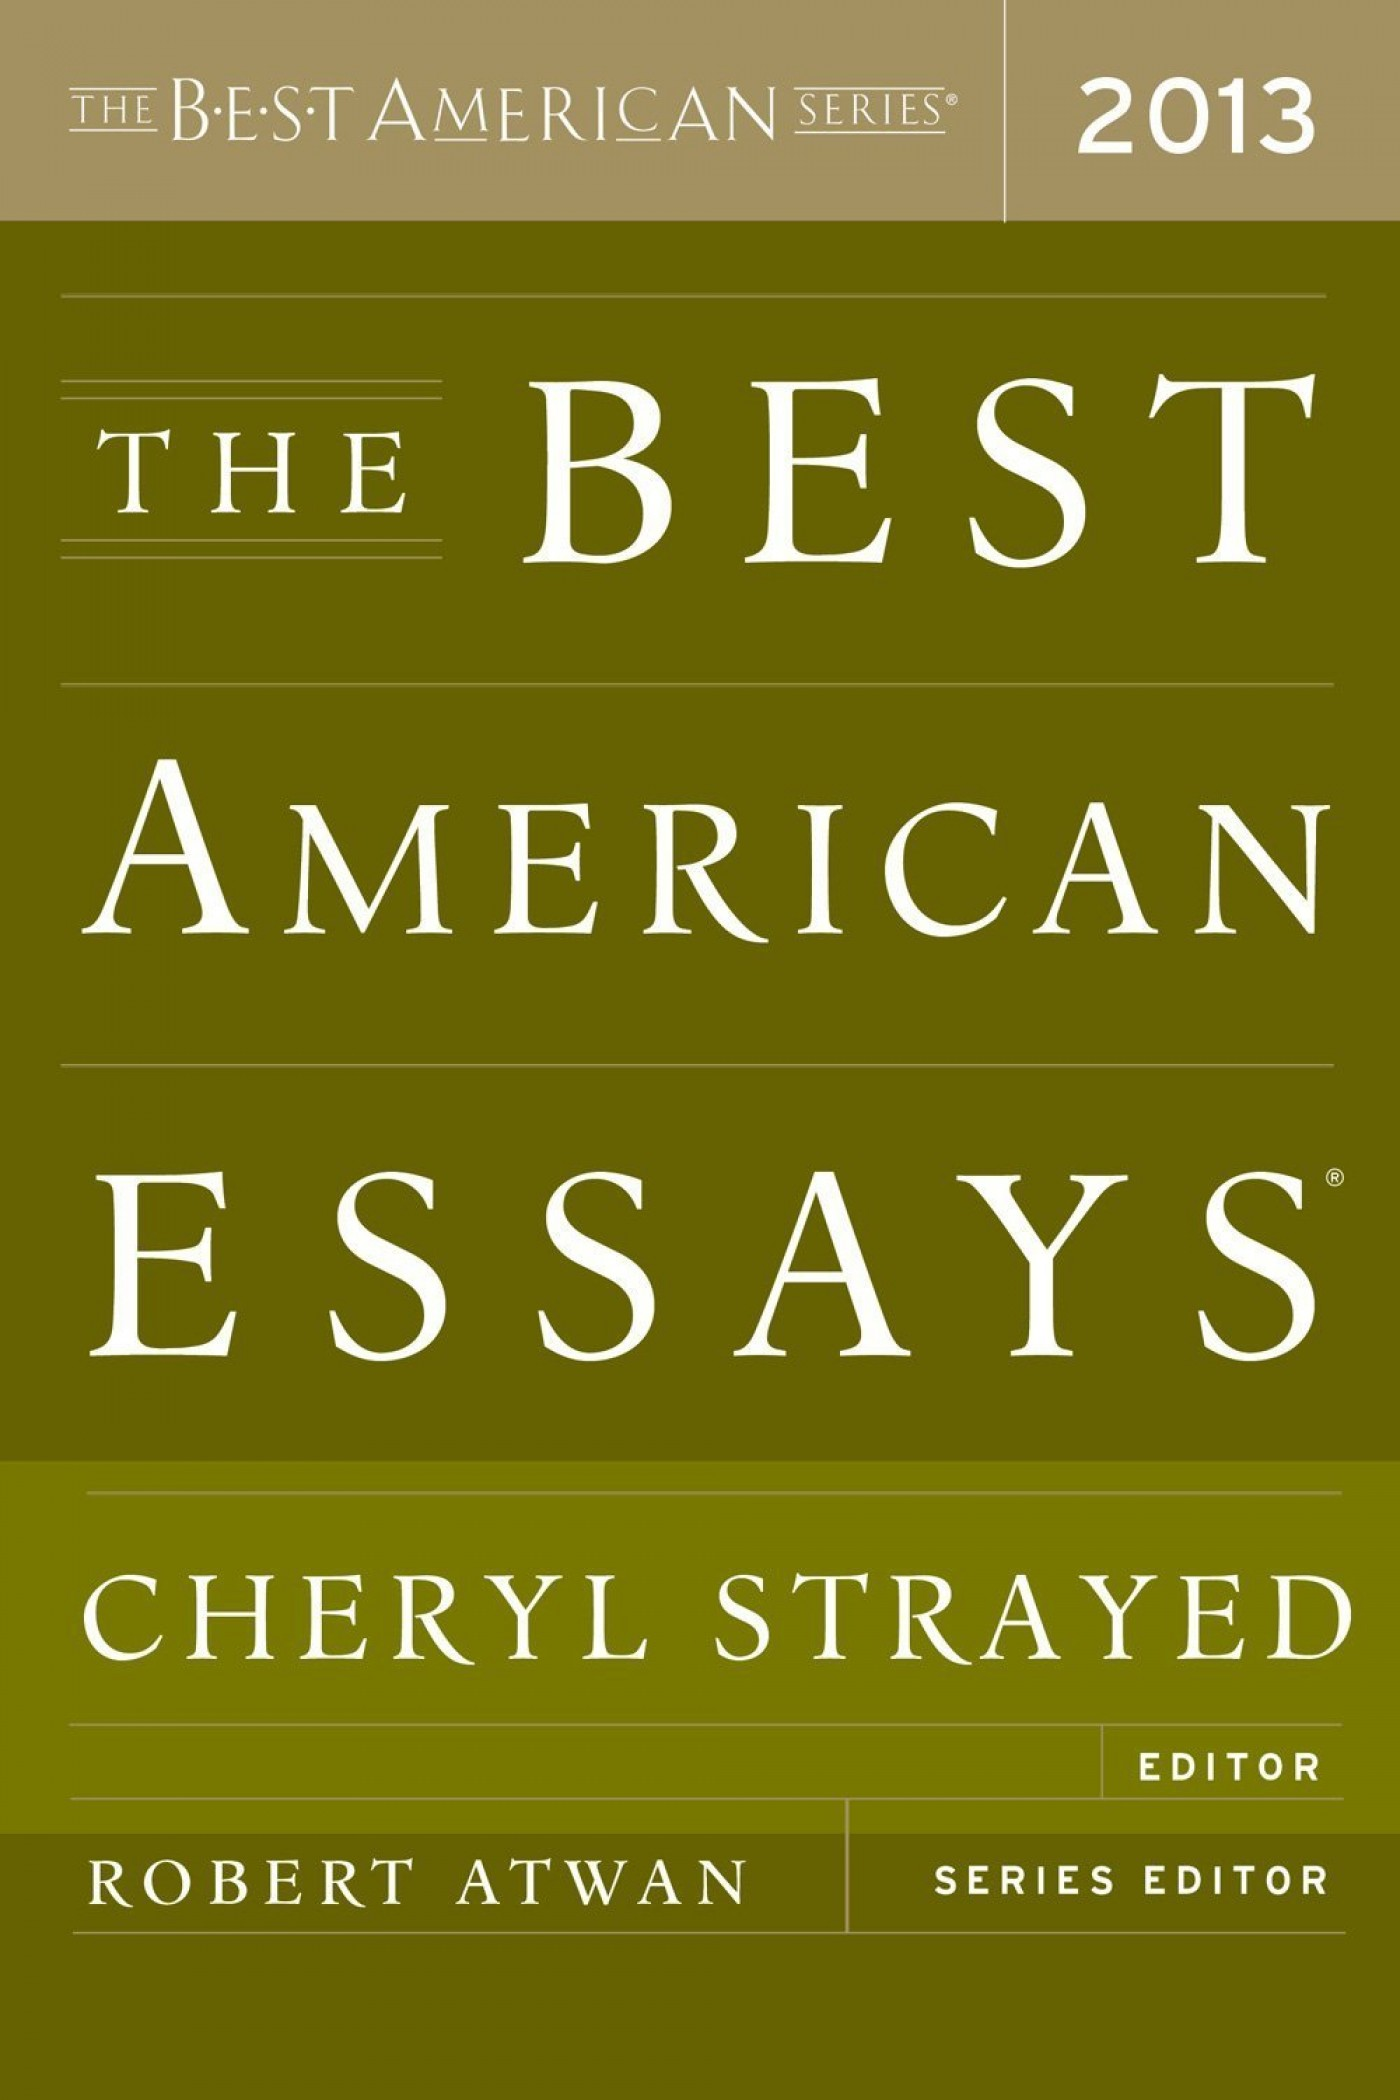 004 The Best American Essays Essay Wonderful 2018 Pdf 2017 Table Of Contents 2015 Free 1400